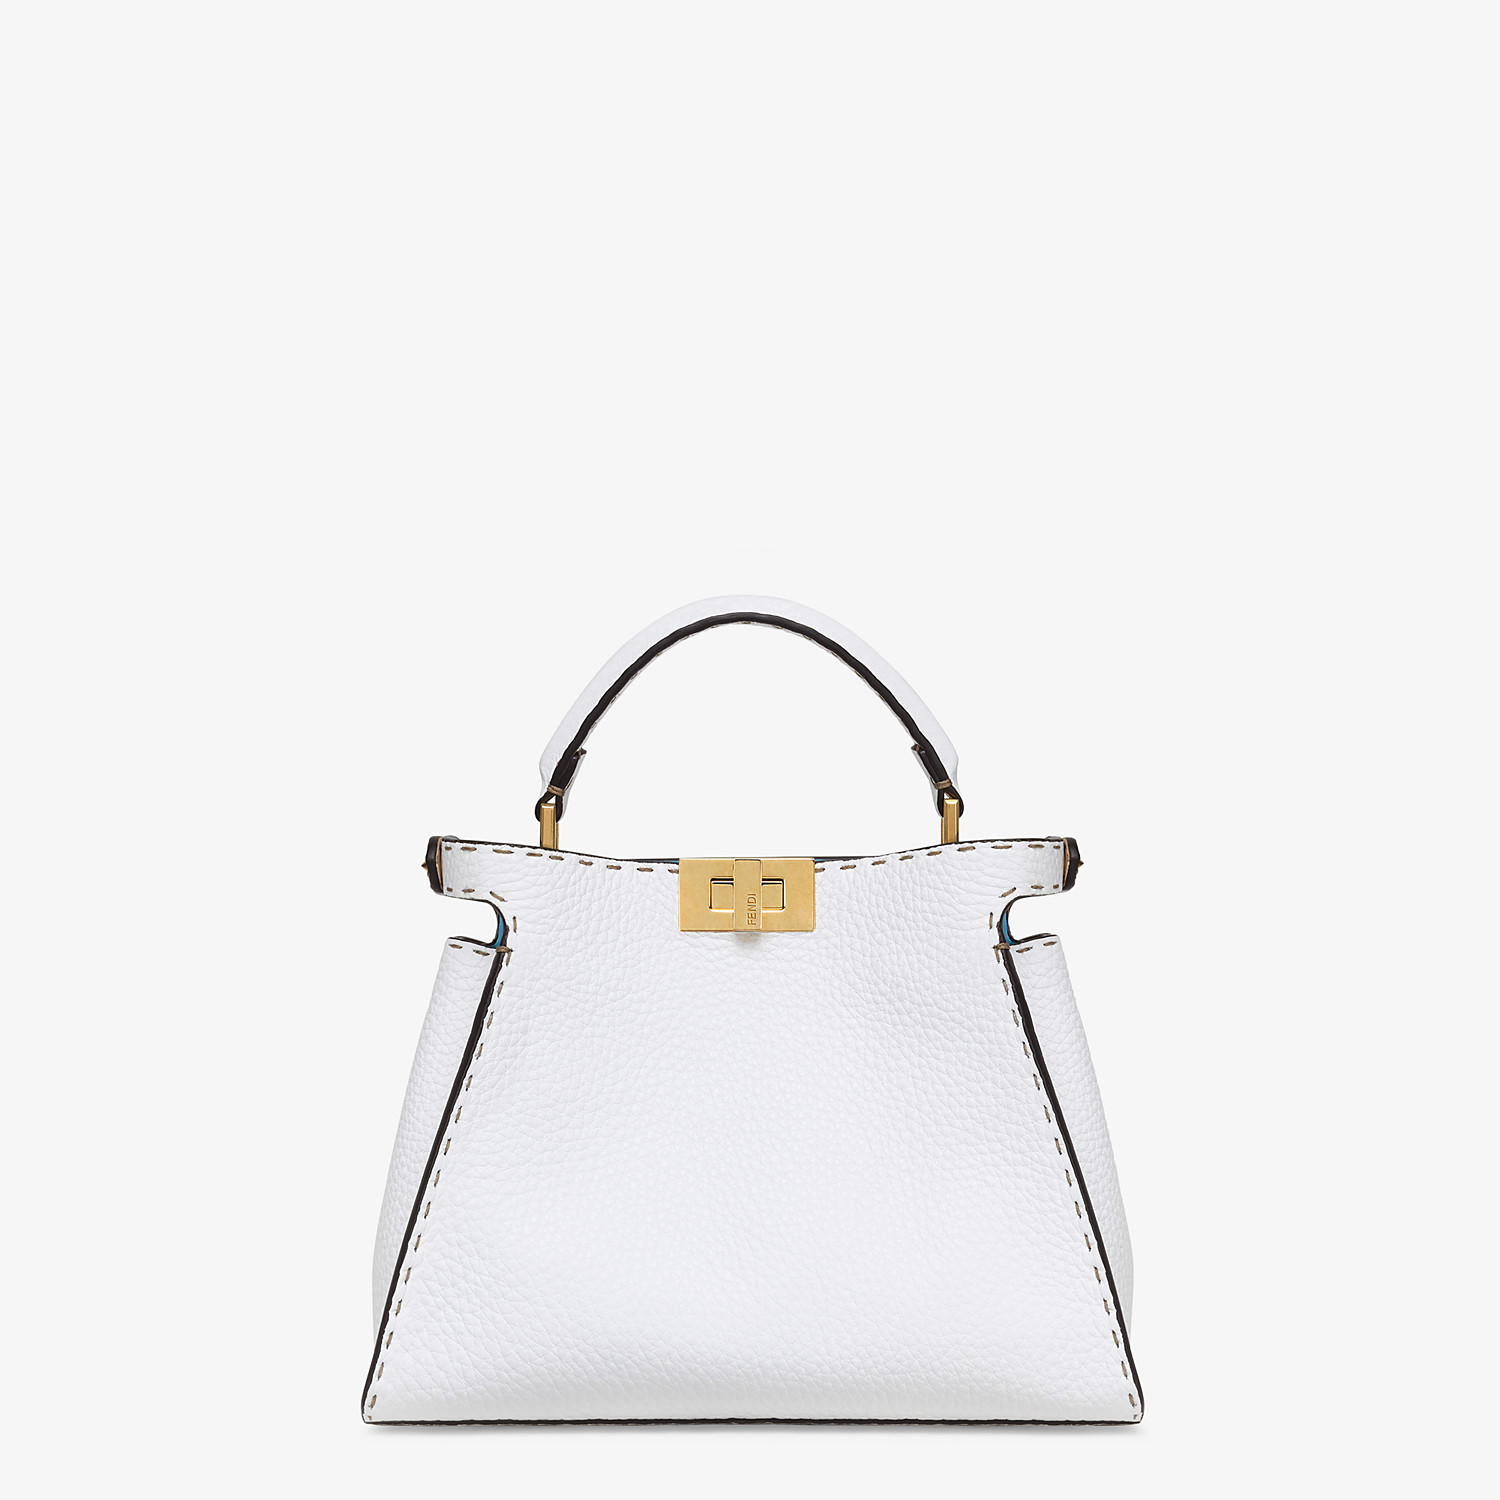 FENDI PEEKABOO ICONIC ESSENTIALLY - White Cuoio Romano leather bag - view 4 detail